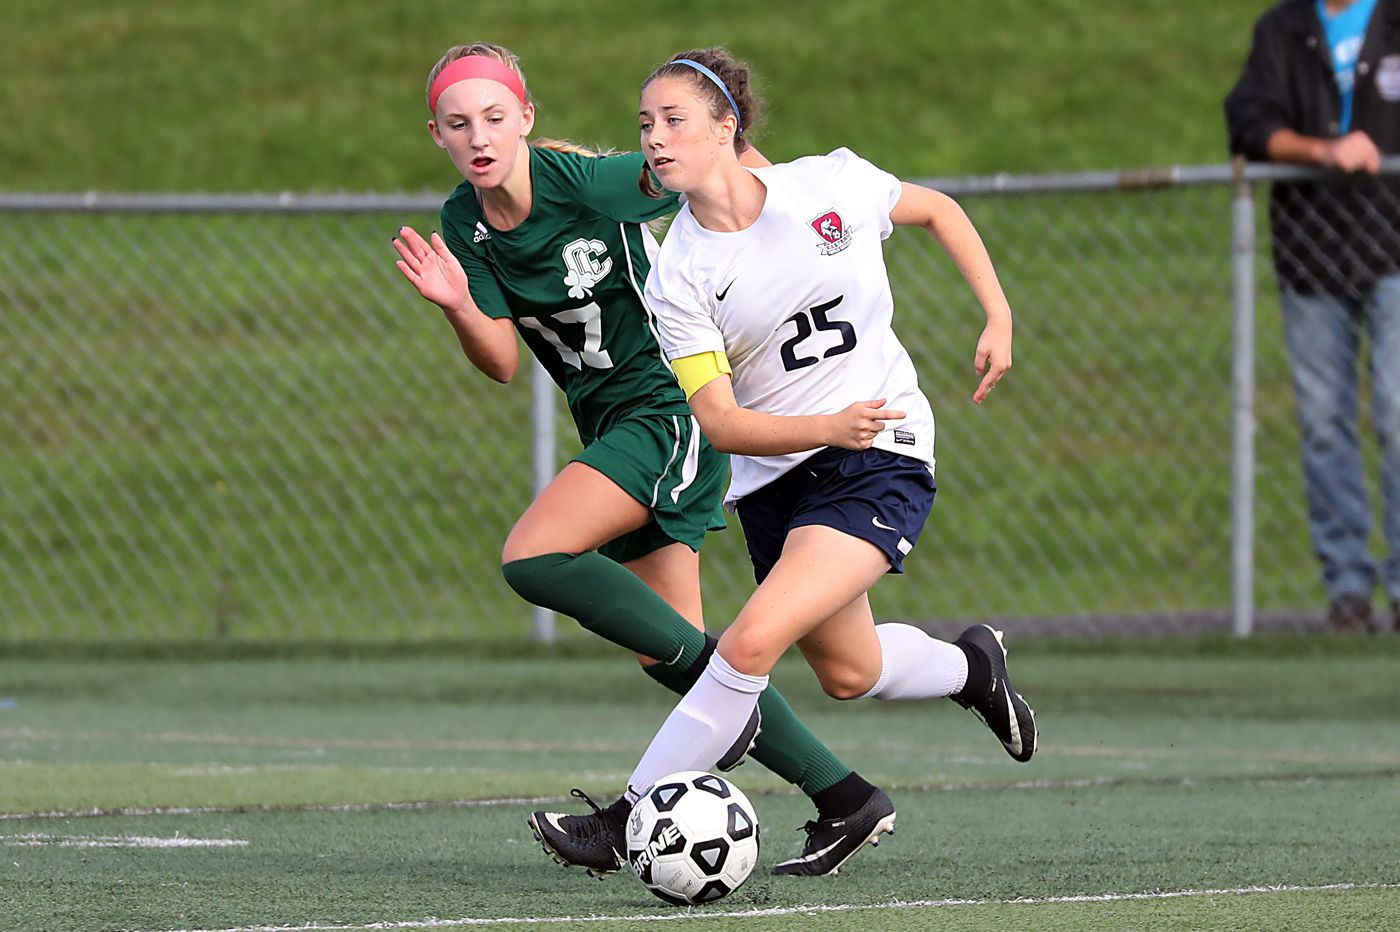 Tuesday's South Jersey roundup: Eastern girls' soccer advances to Group 4 final with double OT win